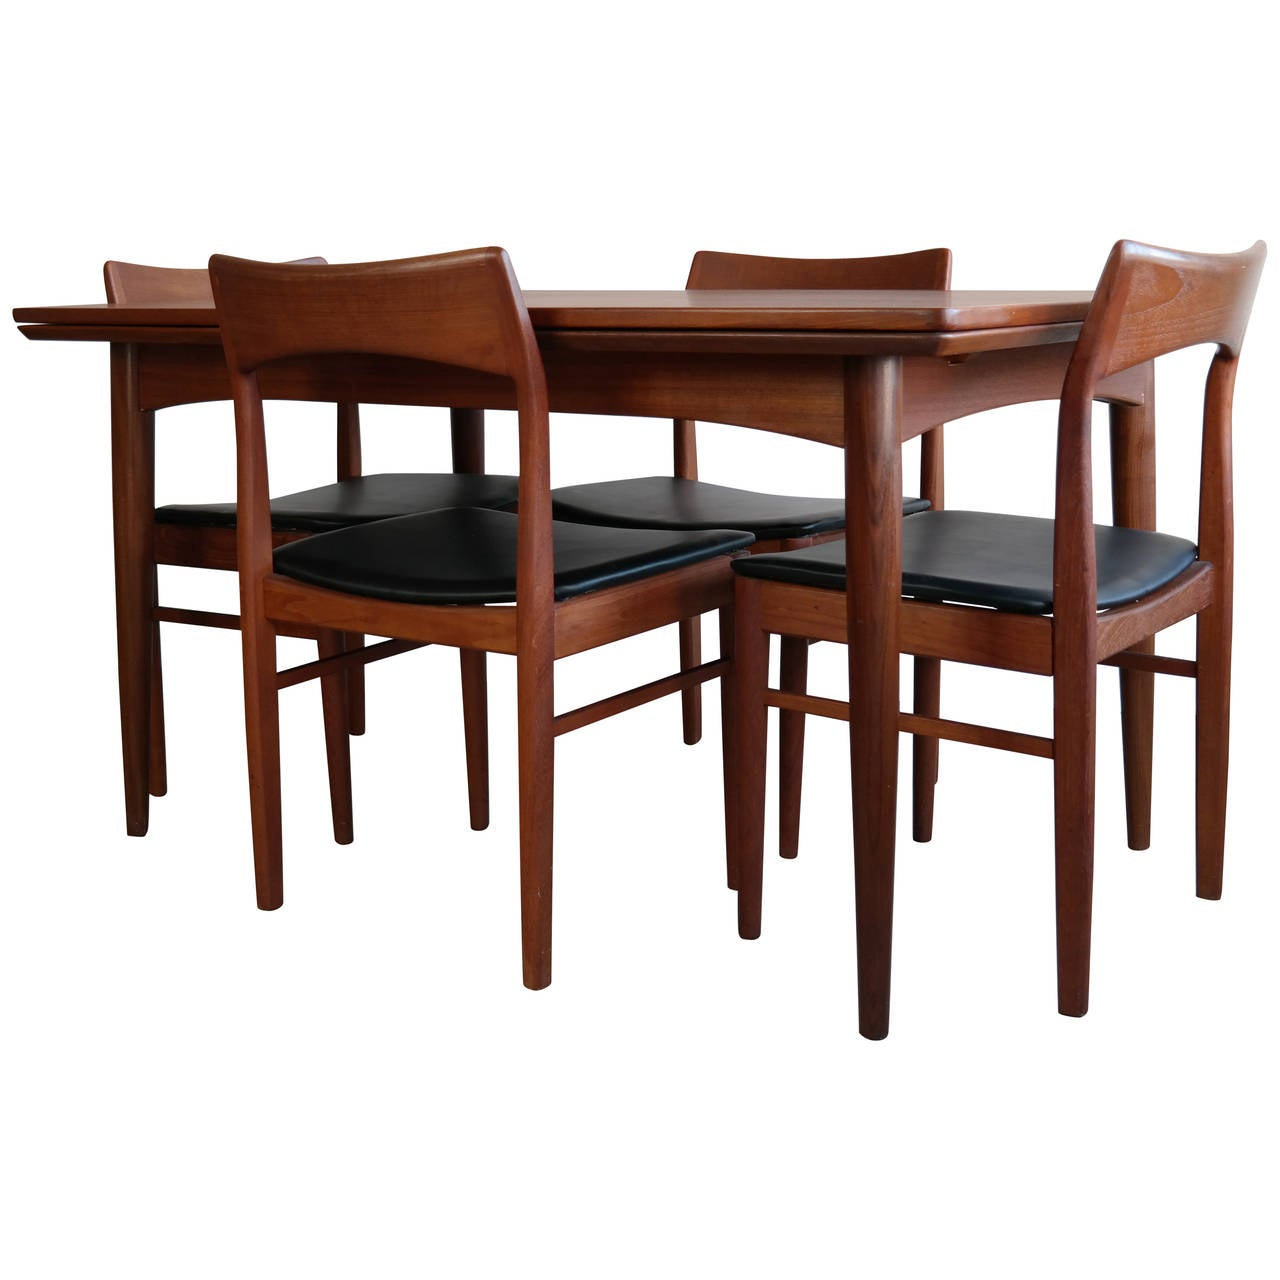 Danish modern dining set in teak at 1stdibs for Modern dining rooms sets